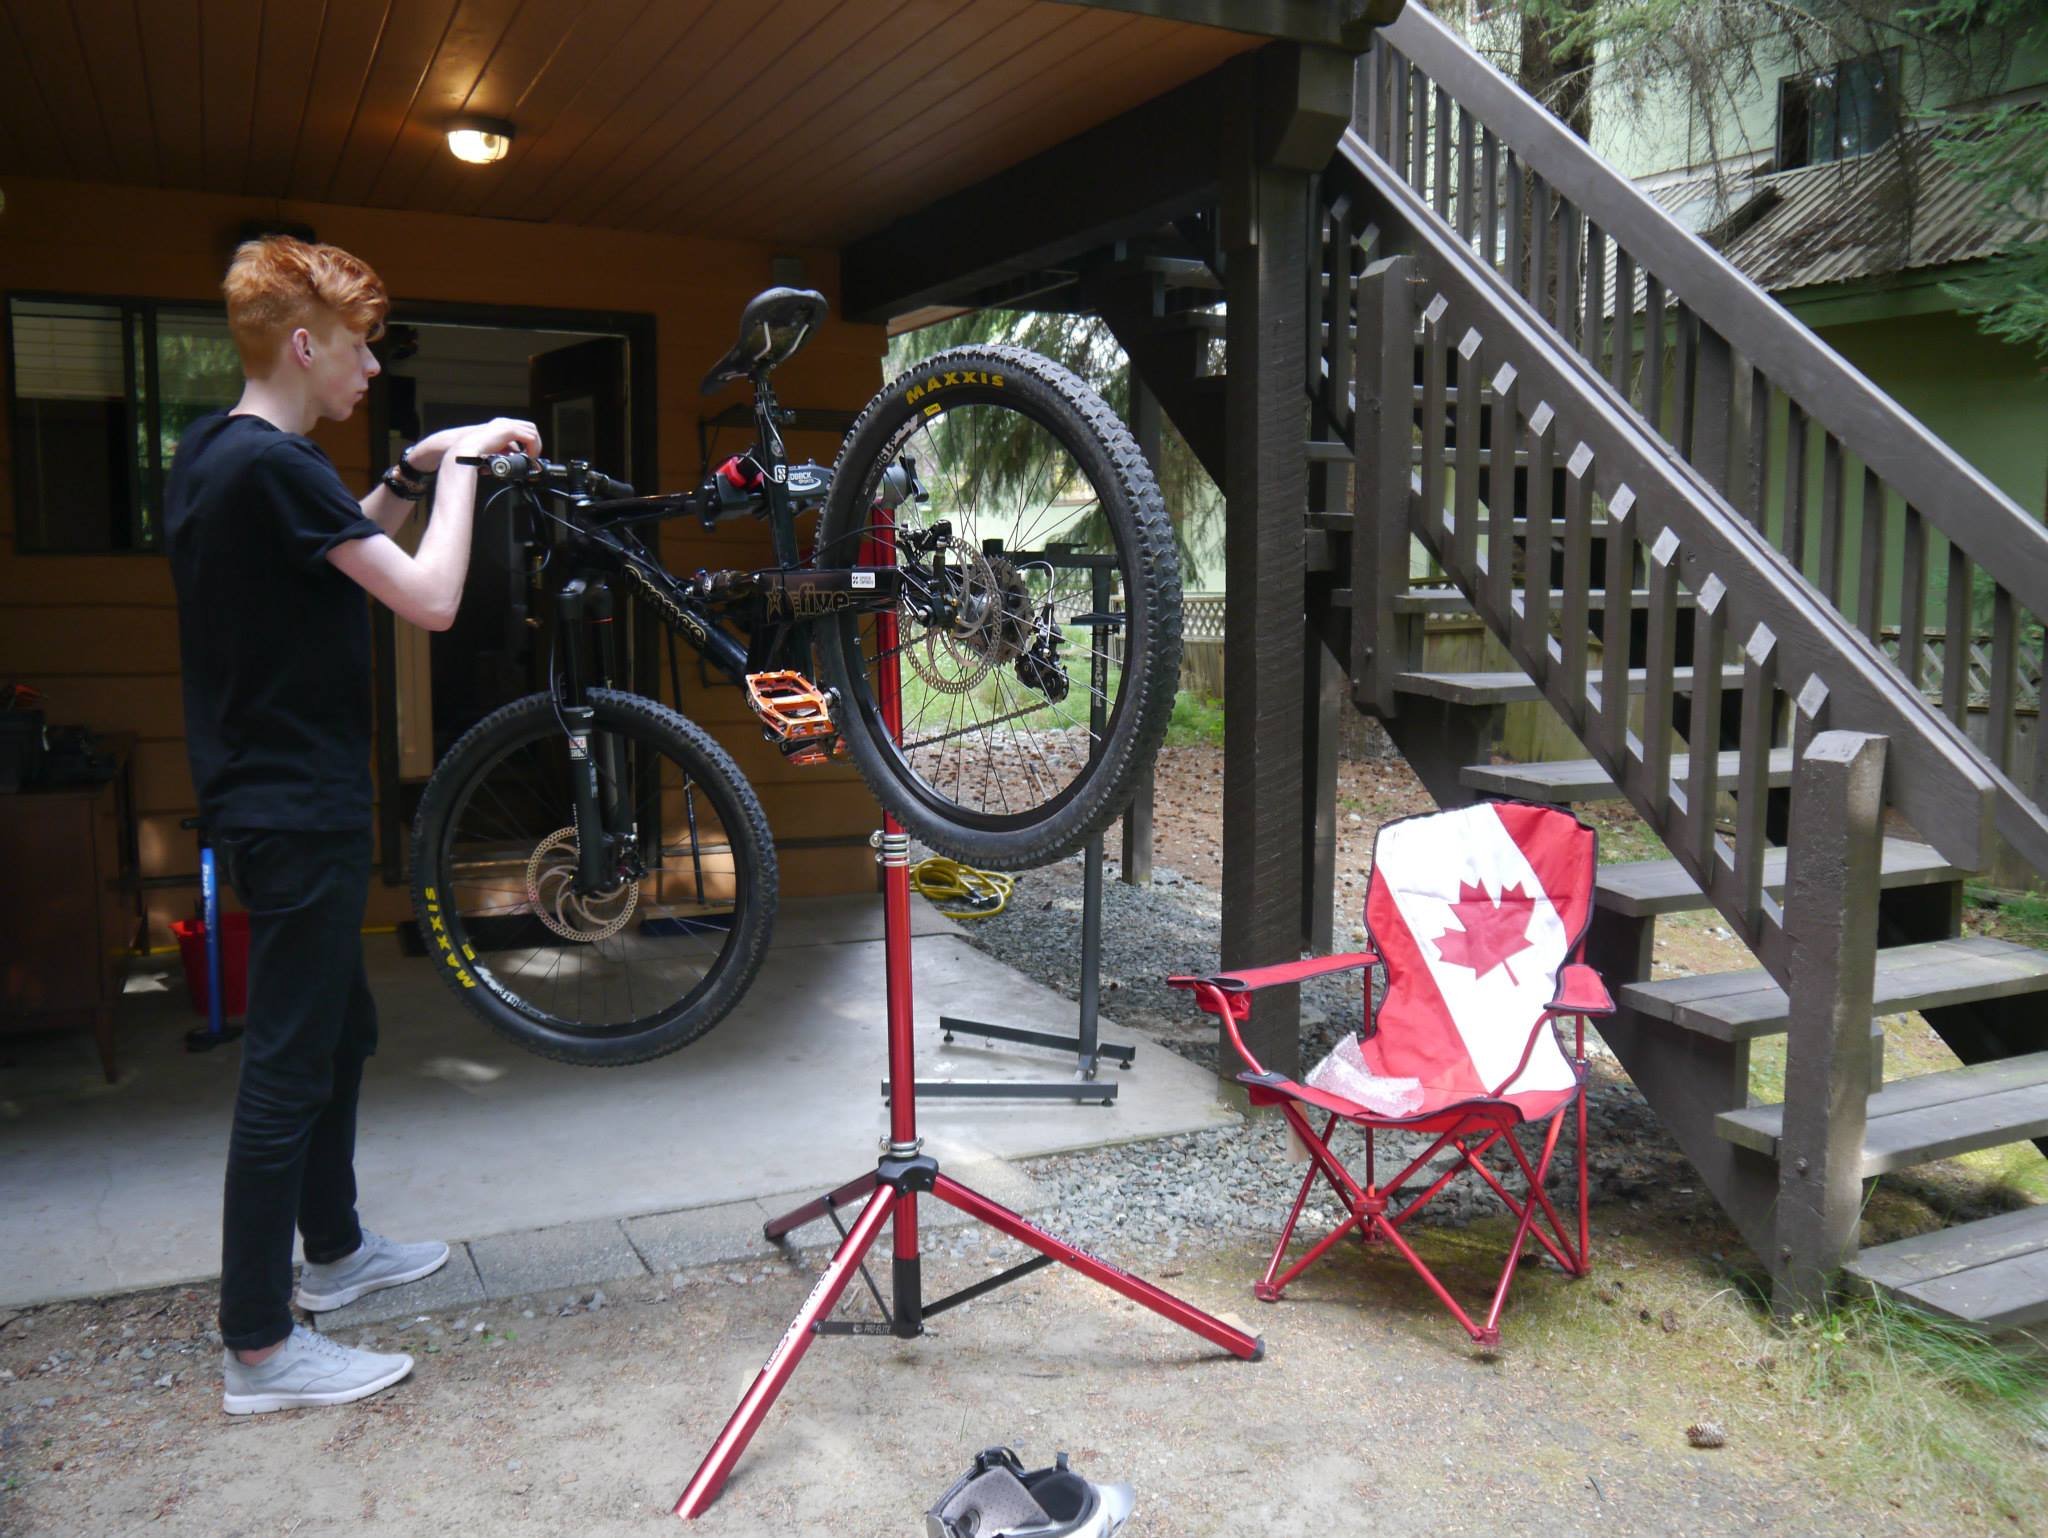 Building up the bikes at the Coaches Camp chalet